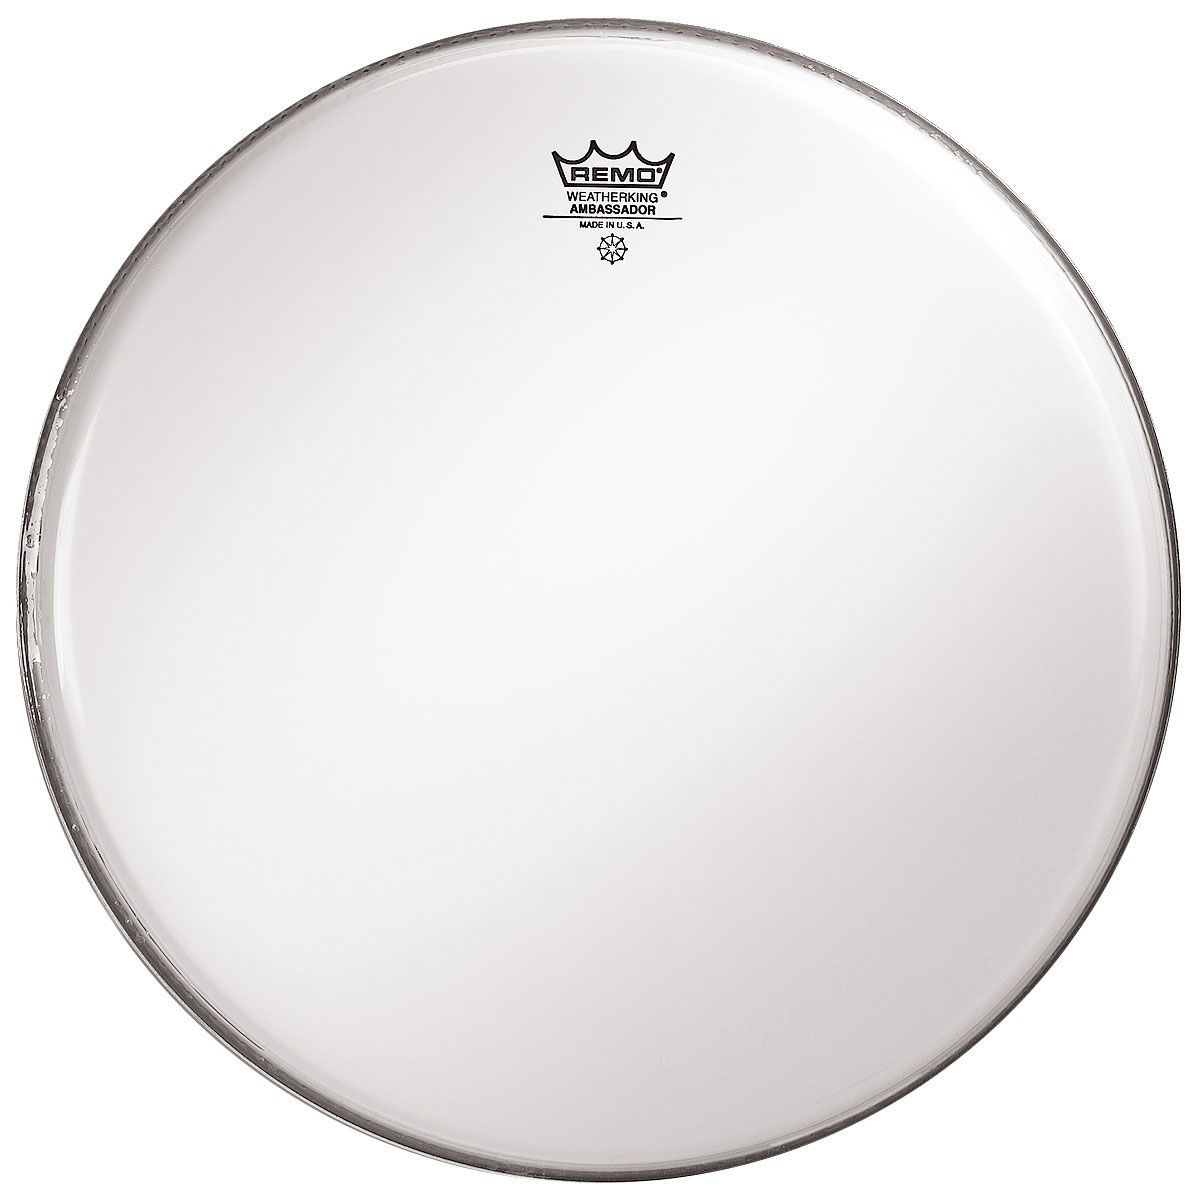 "Remo 12"" Ambassador Smooth White Drum Head"